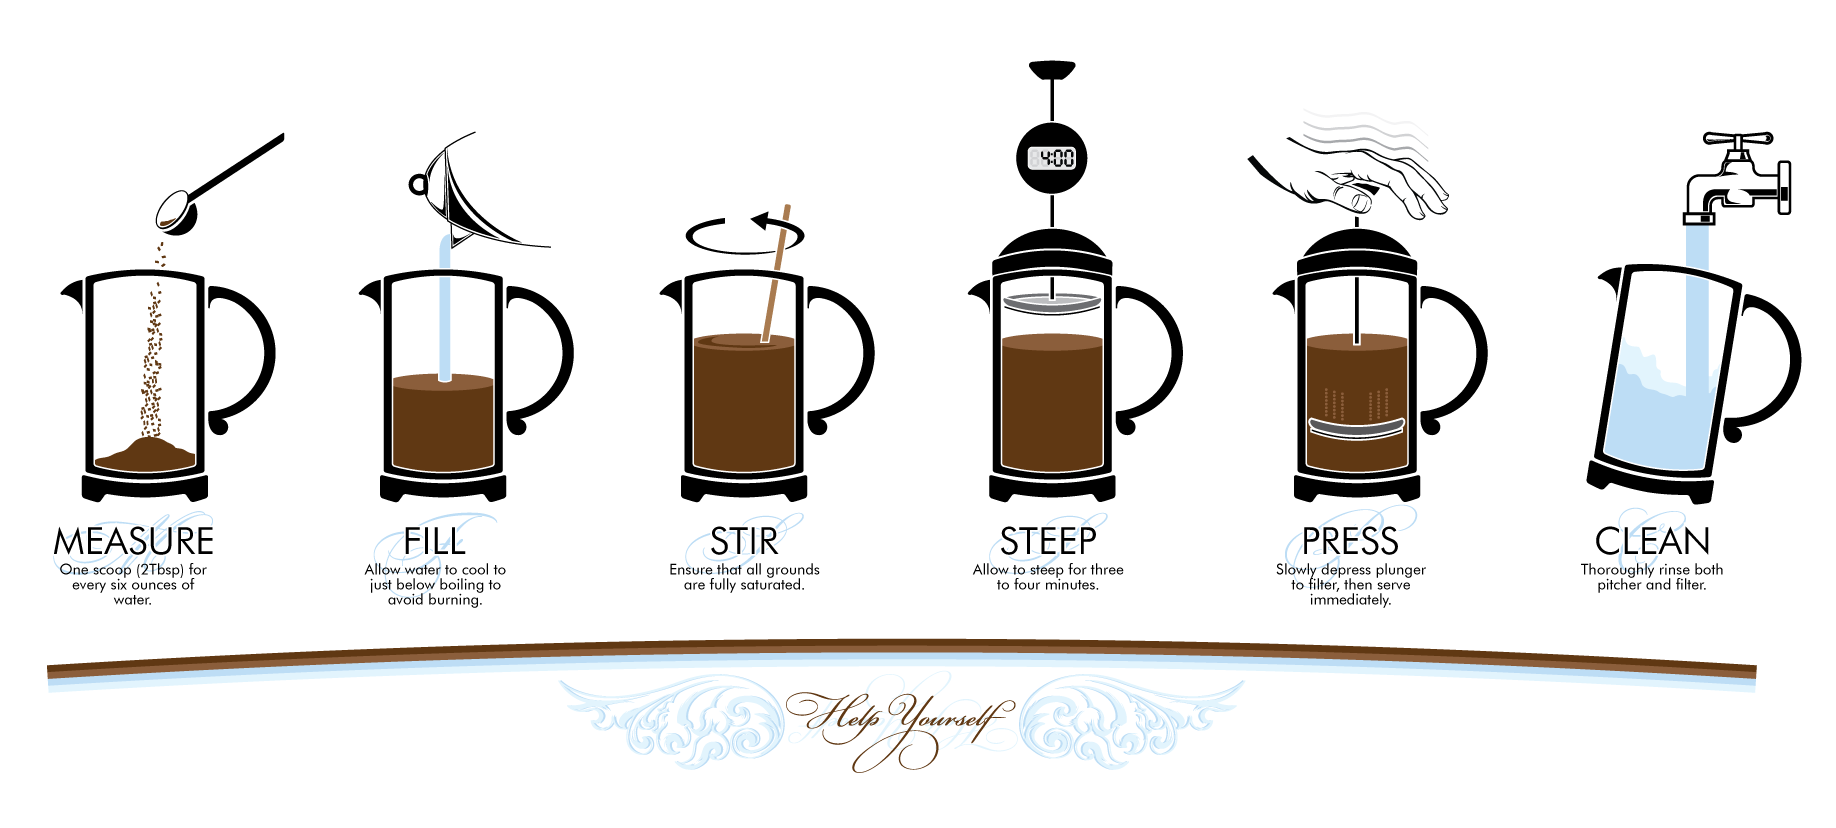 How To Make French Press Coffee With